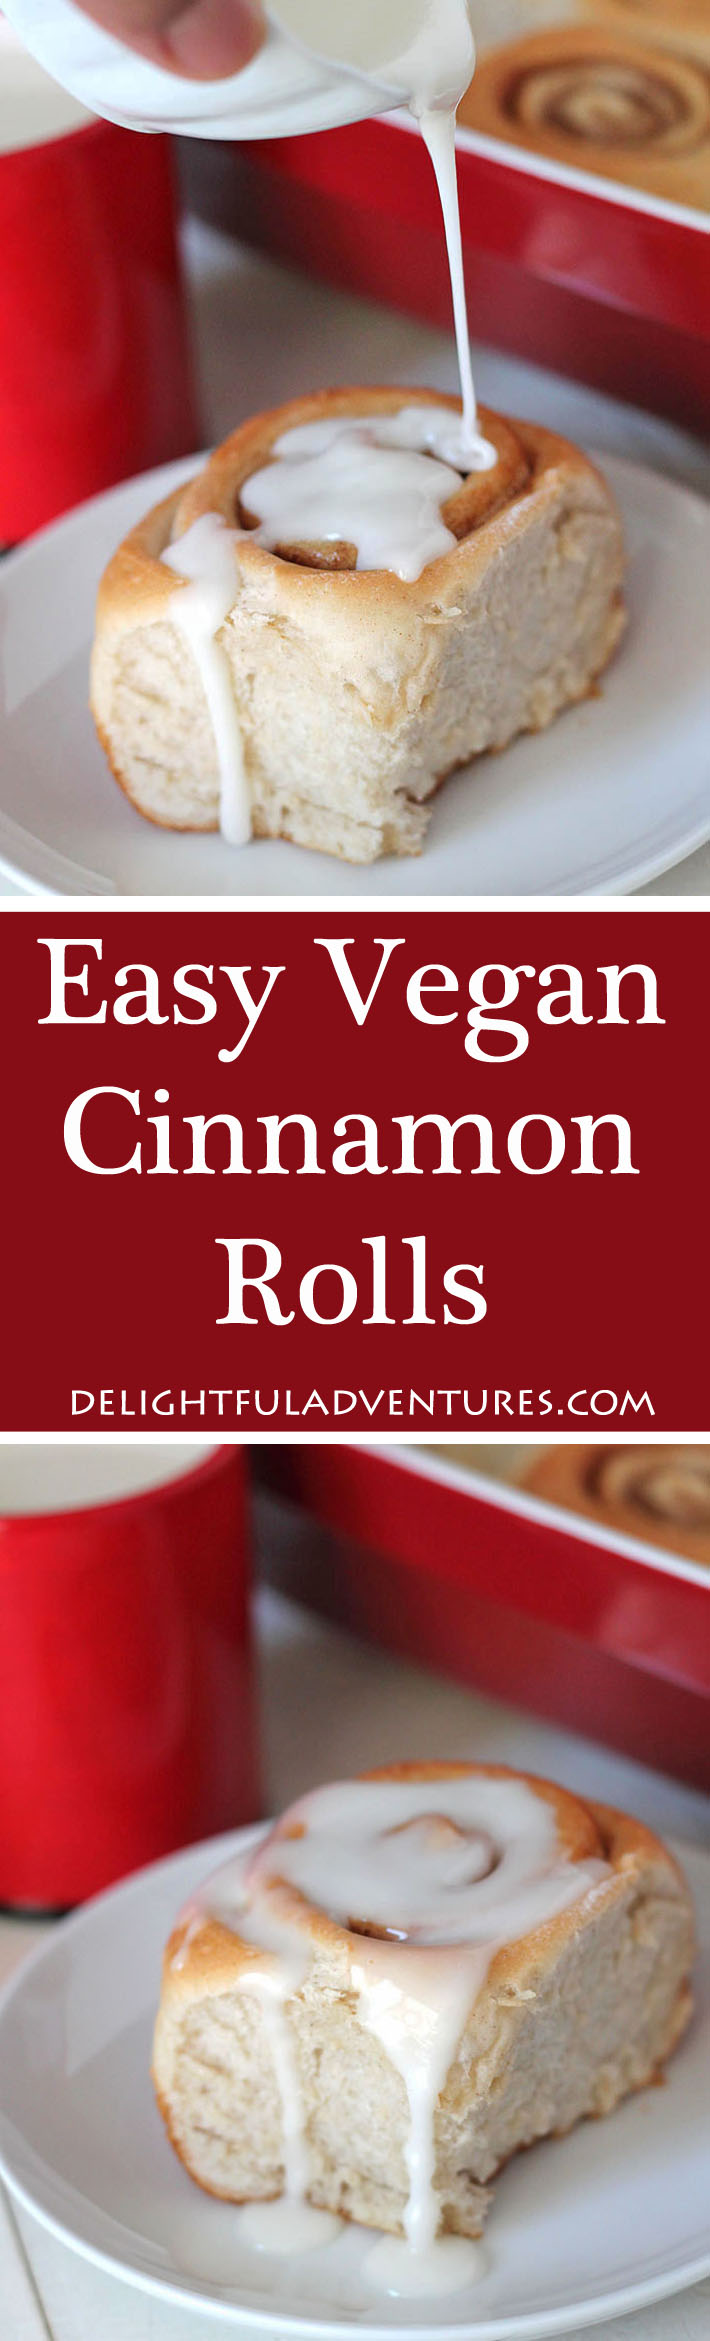 Soft, fluffy, easy vegan cinnamon rolls that can be made right away or prepared the day before and baked in the morning. They're perfect for enjoying with tea or serving at brunches, breakfast or during the holidays! #cinnamonrolls #vegancinnamonrolls #cinnamonbuns #vegancinnamonbuns #veganrolls